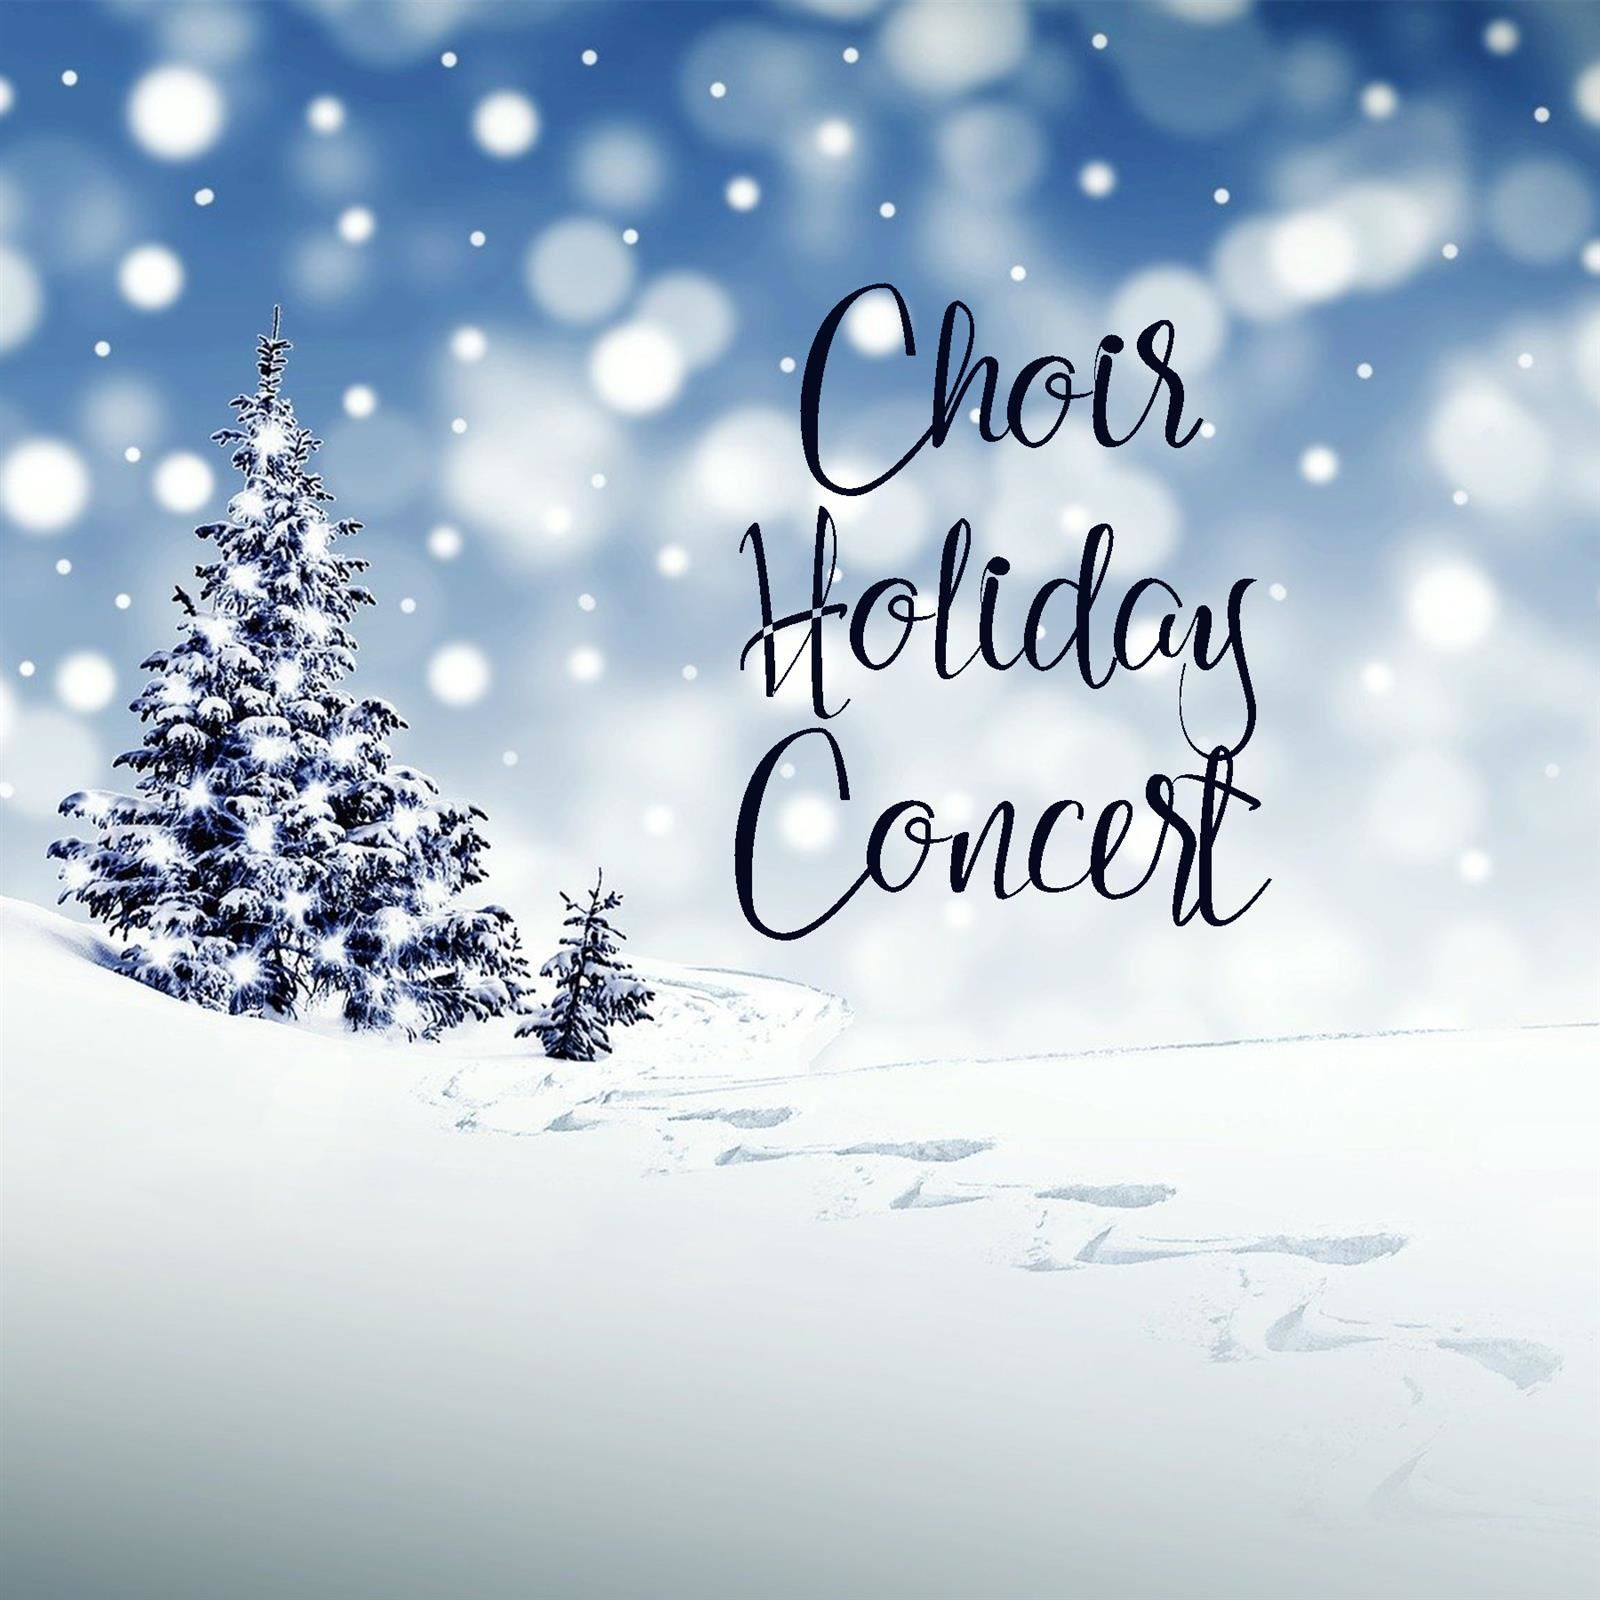 Image - snow covered tree Text - Choir Holiday Concert